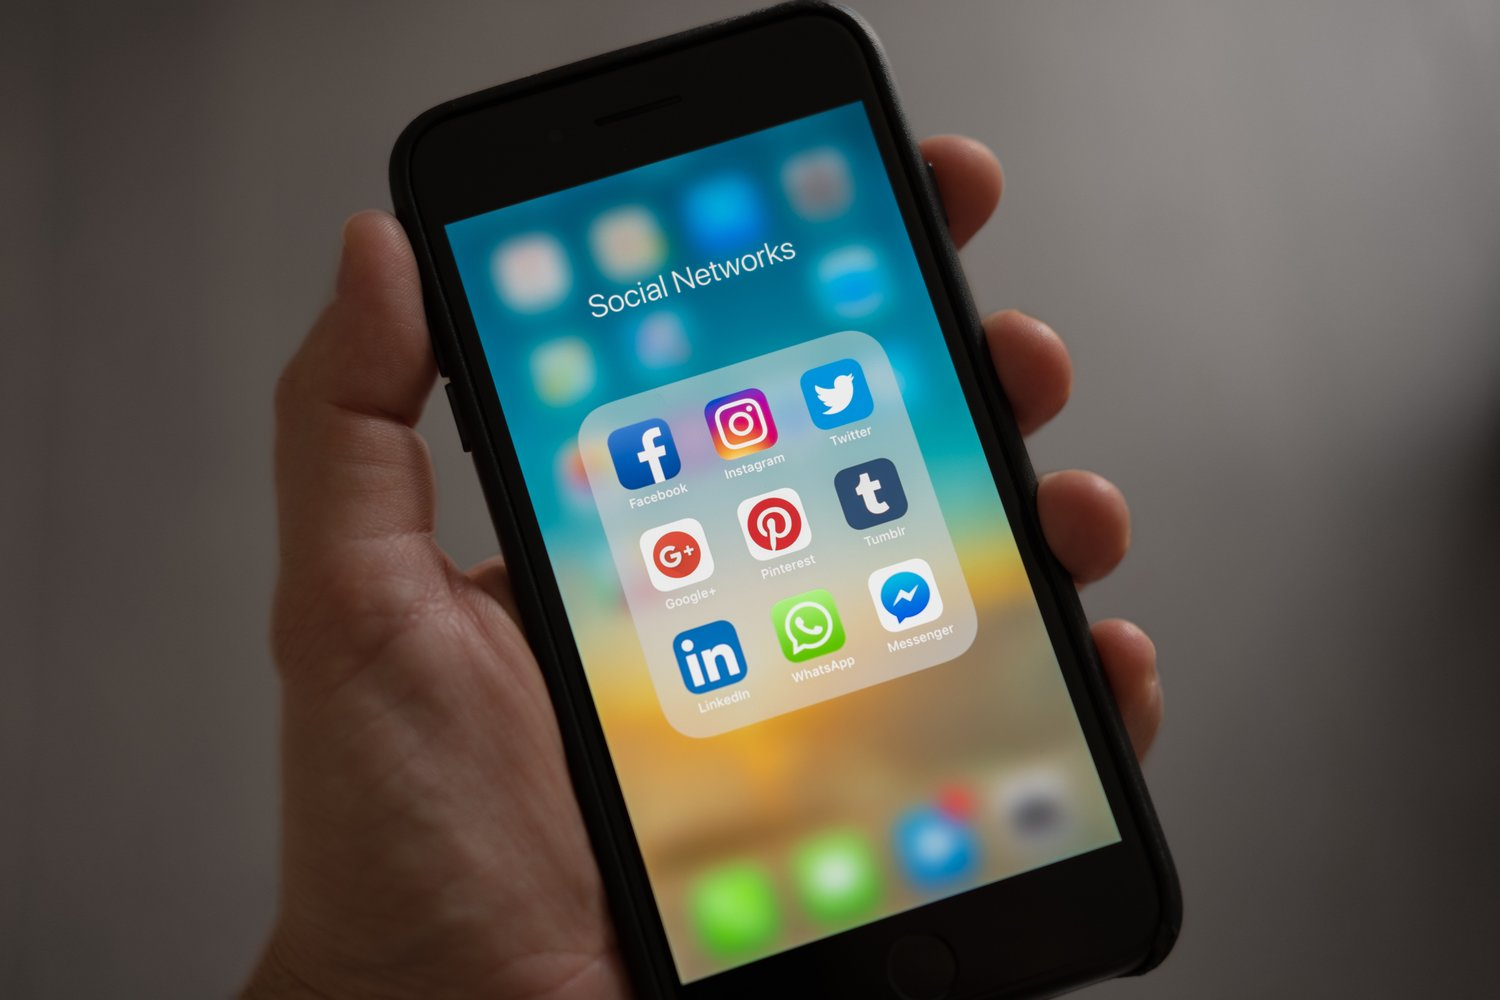 Section 230 of a key law pertaining to digital content shields social media companies from being held liable for what their users post. Both parties want to change the section of law, but experts say it will be difficult.